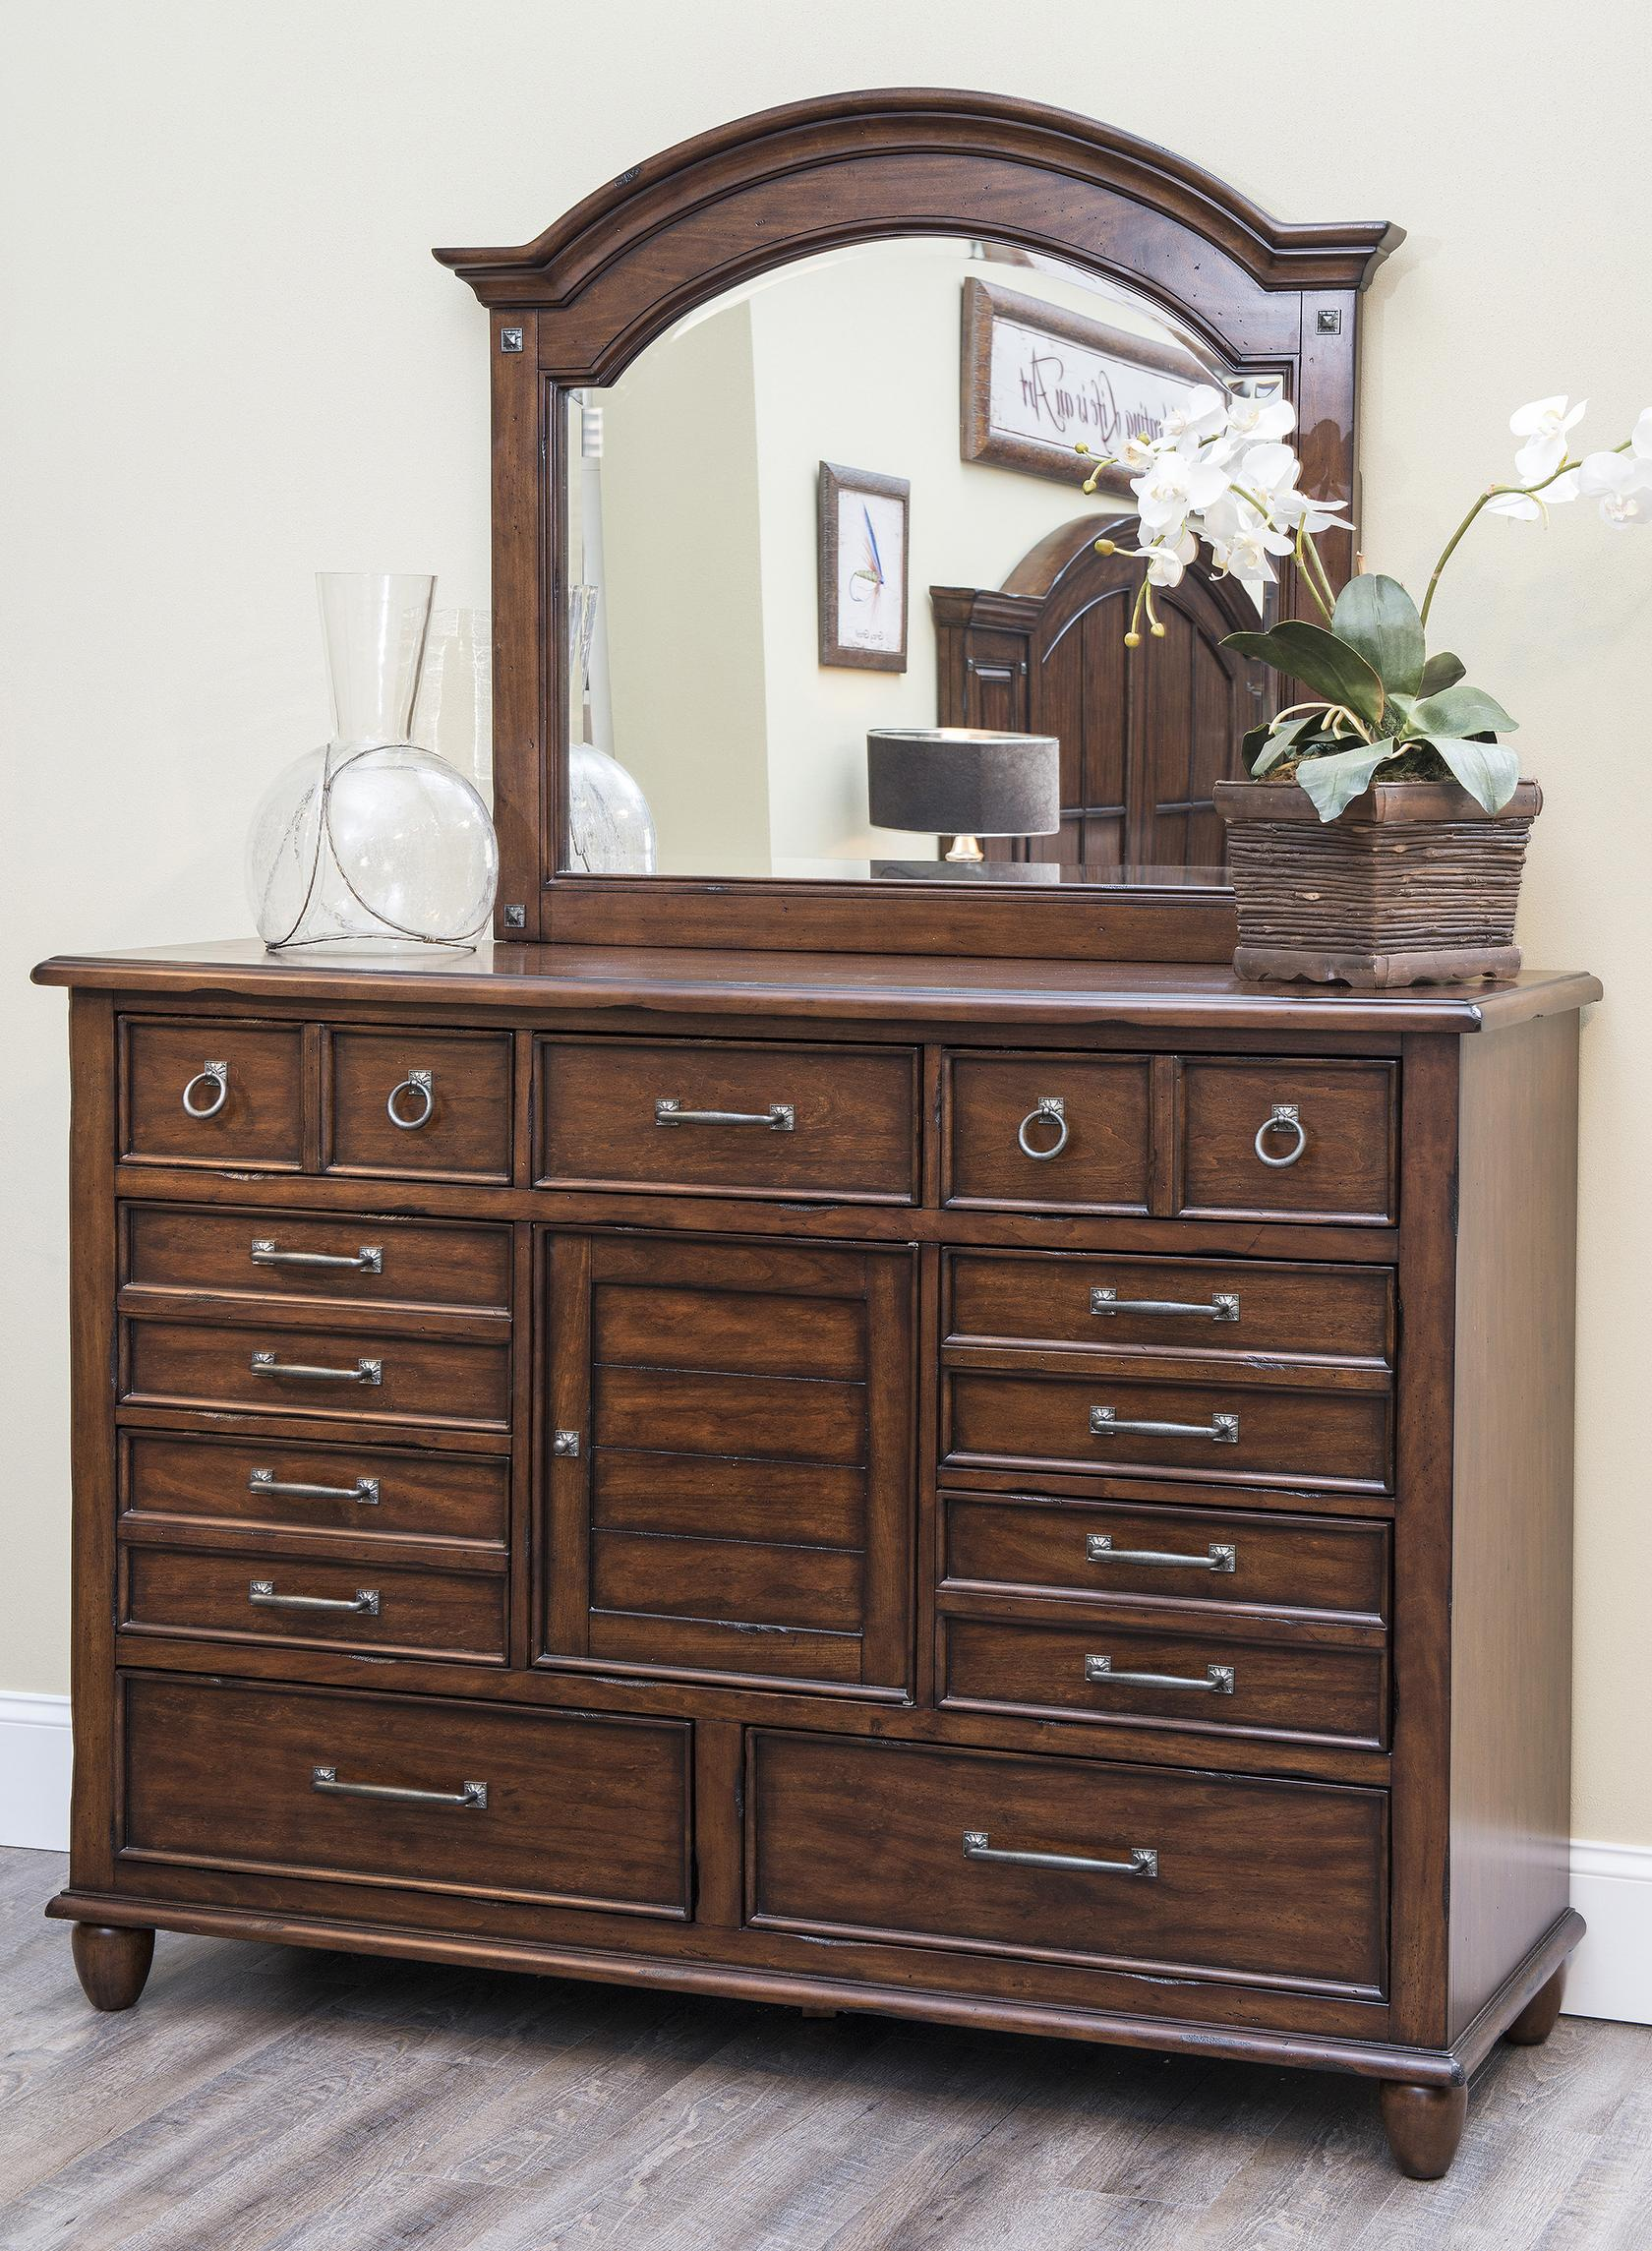 Easton Collection Blue Ridge Dresser and Mirror Set - Item Number: 426-650 DRES+661 MIRR